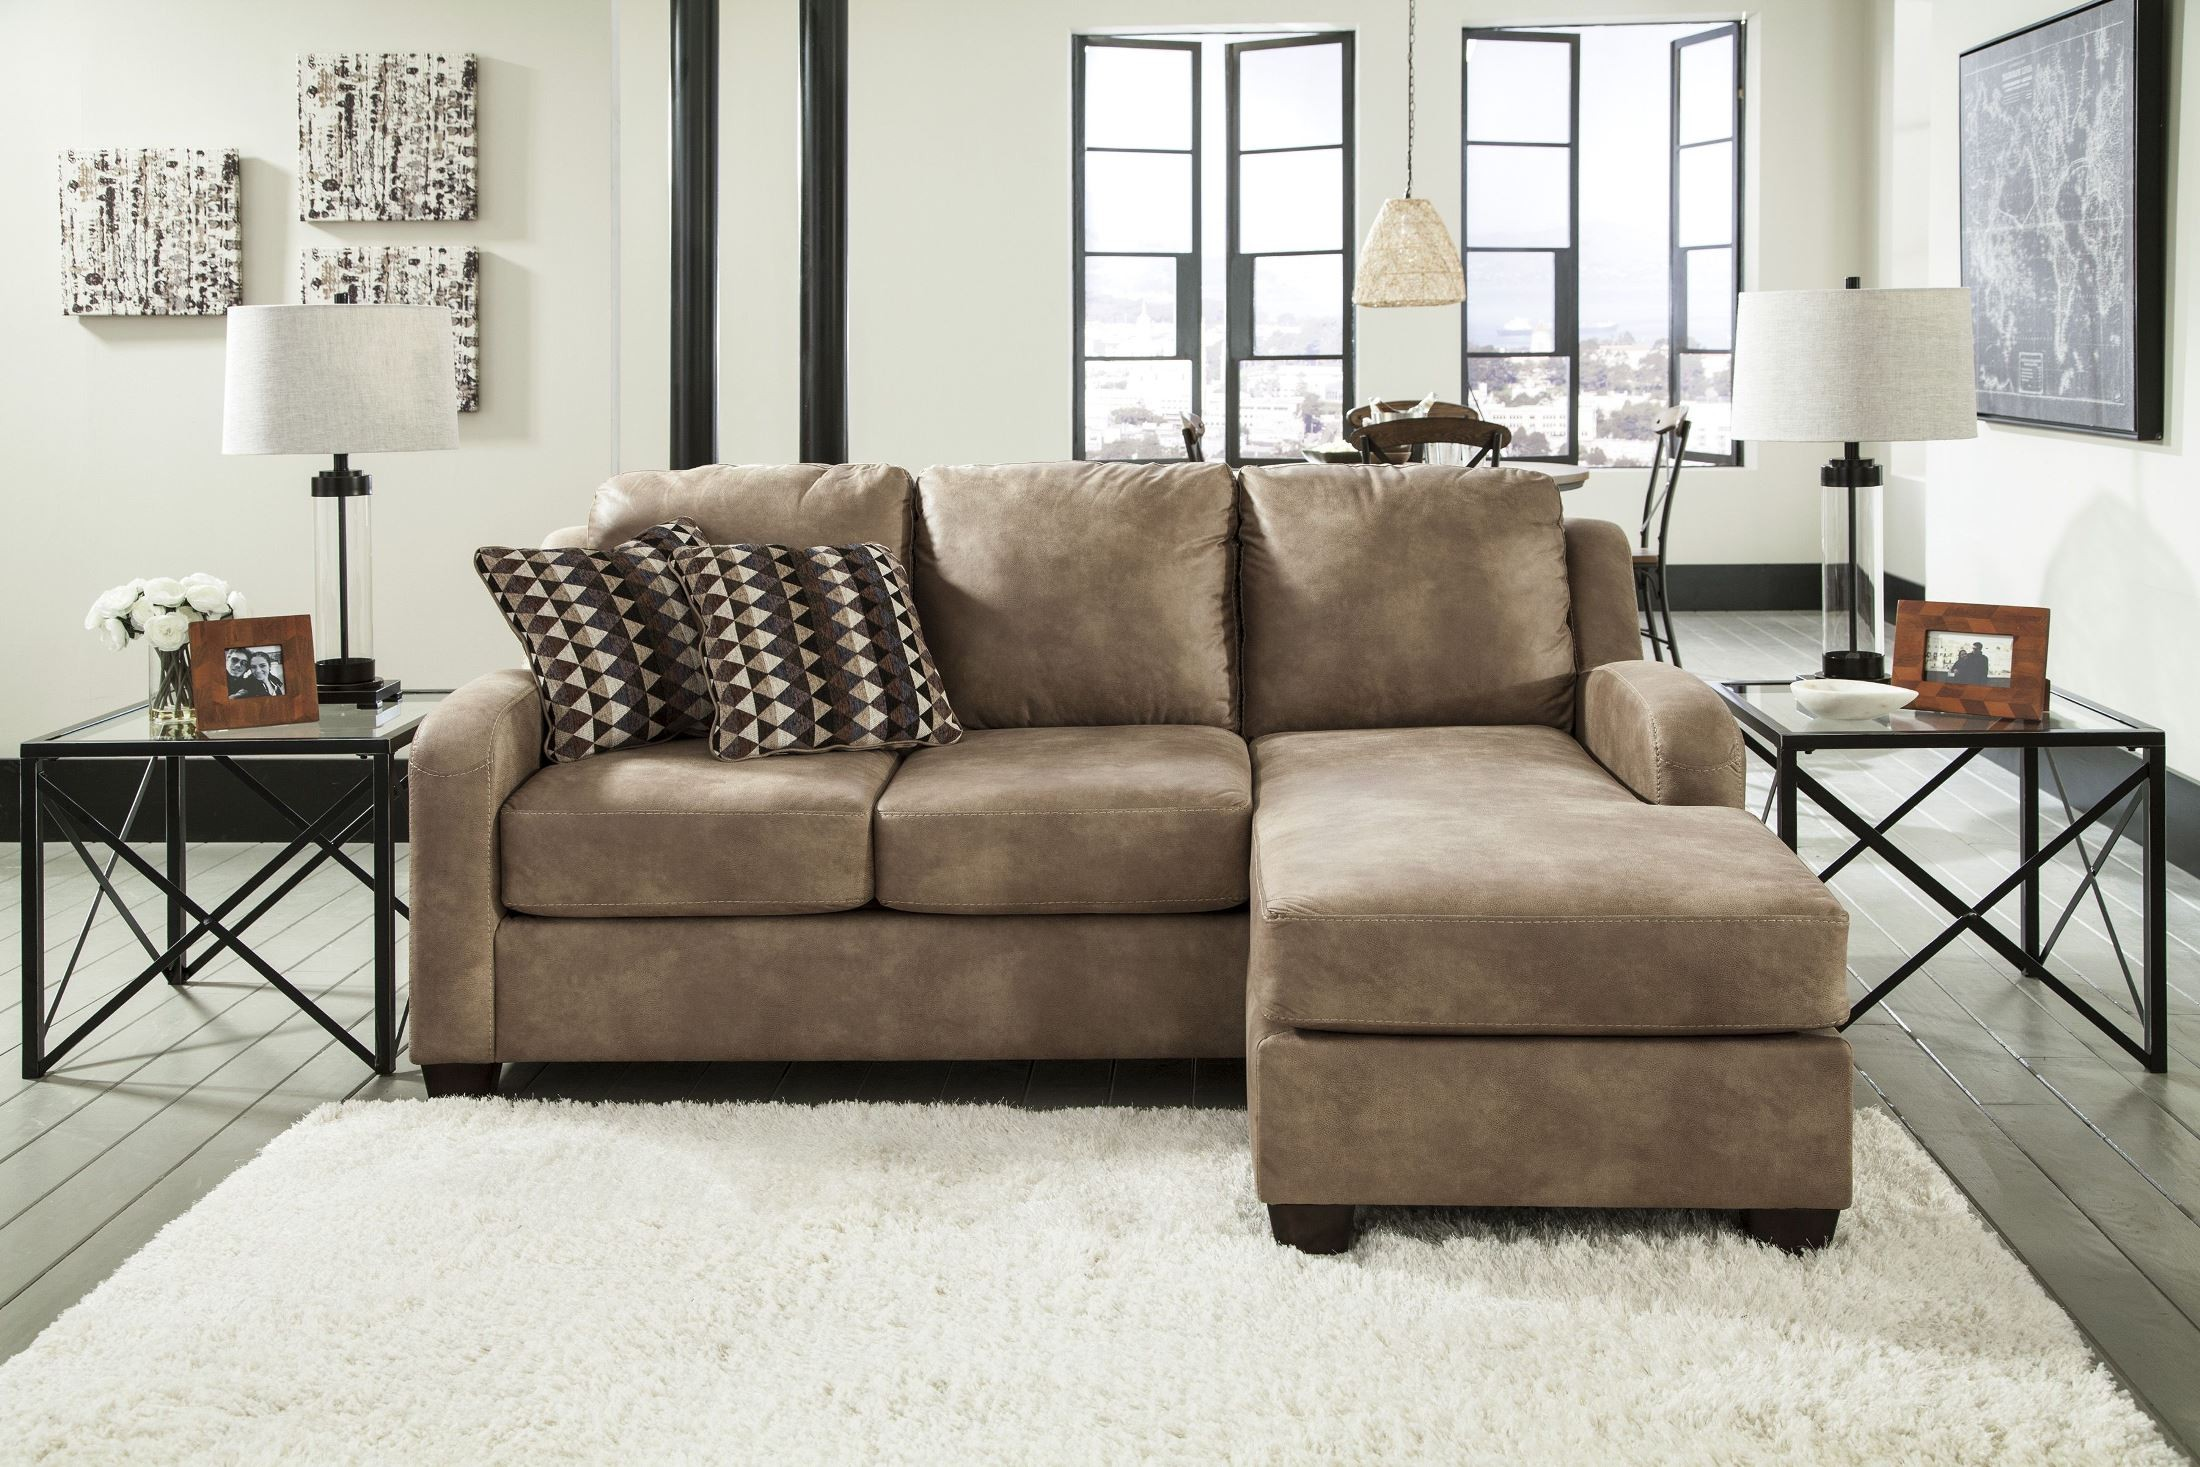 Alturo dune sofa chaise from ashley 6000318 coleman for Ashley chaise sofa